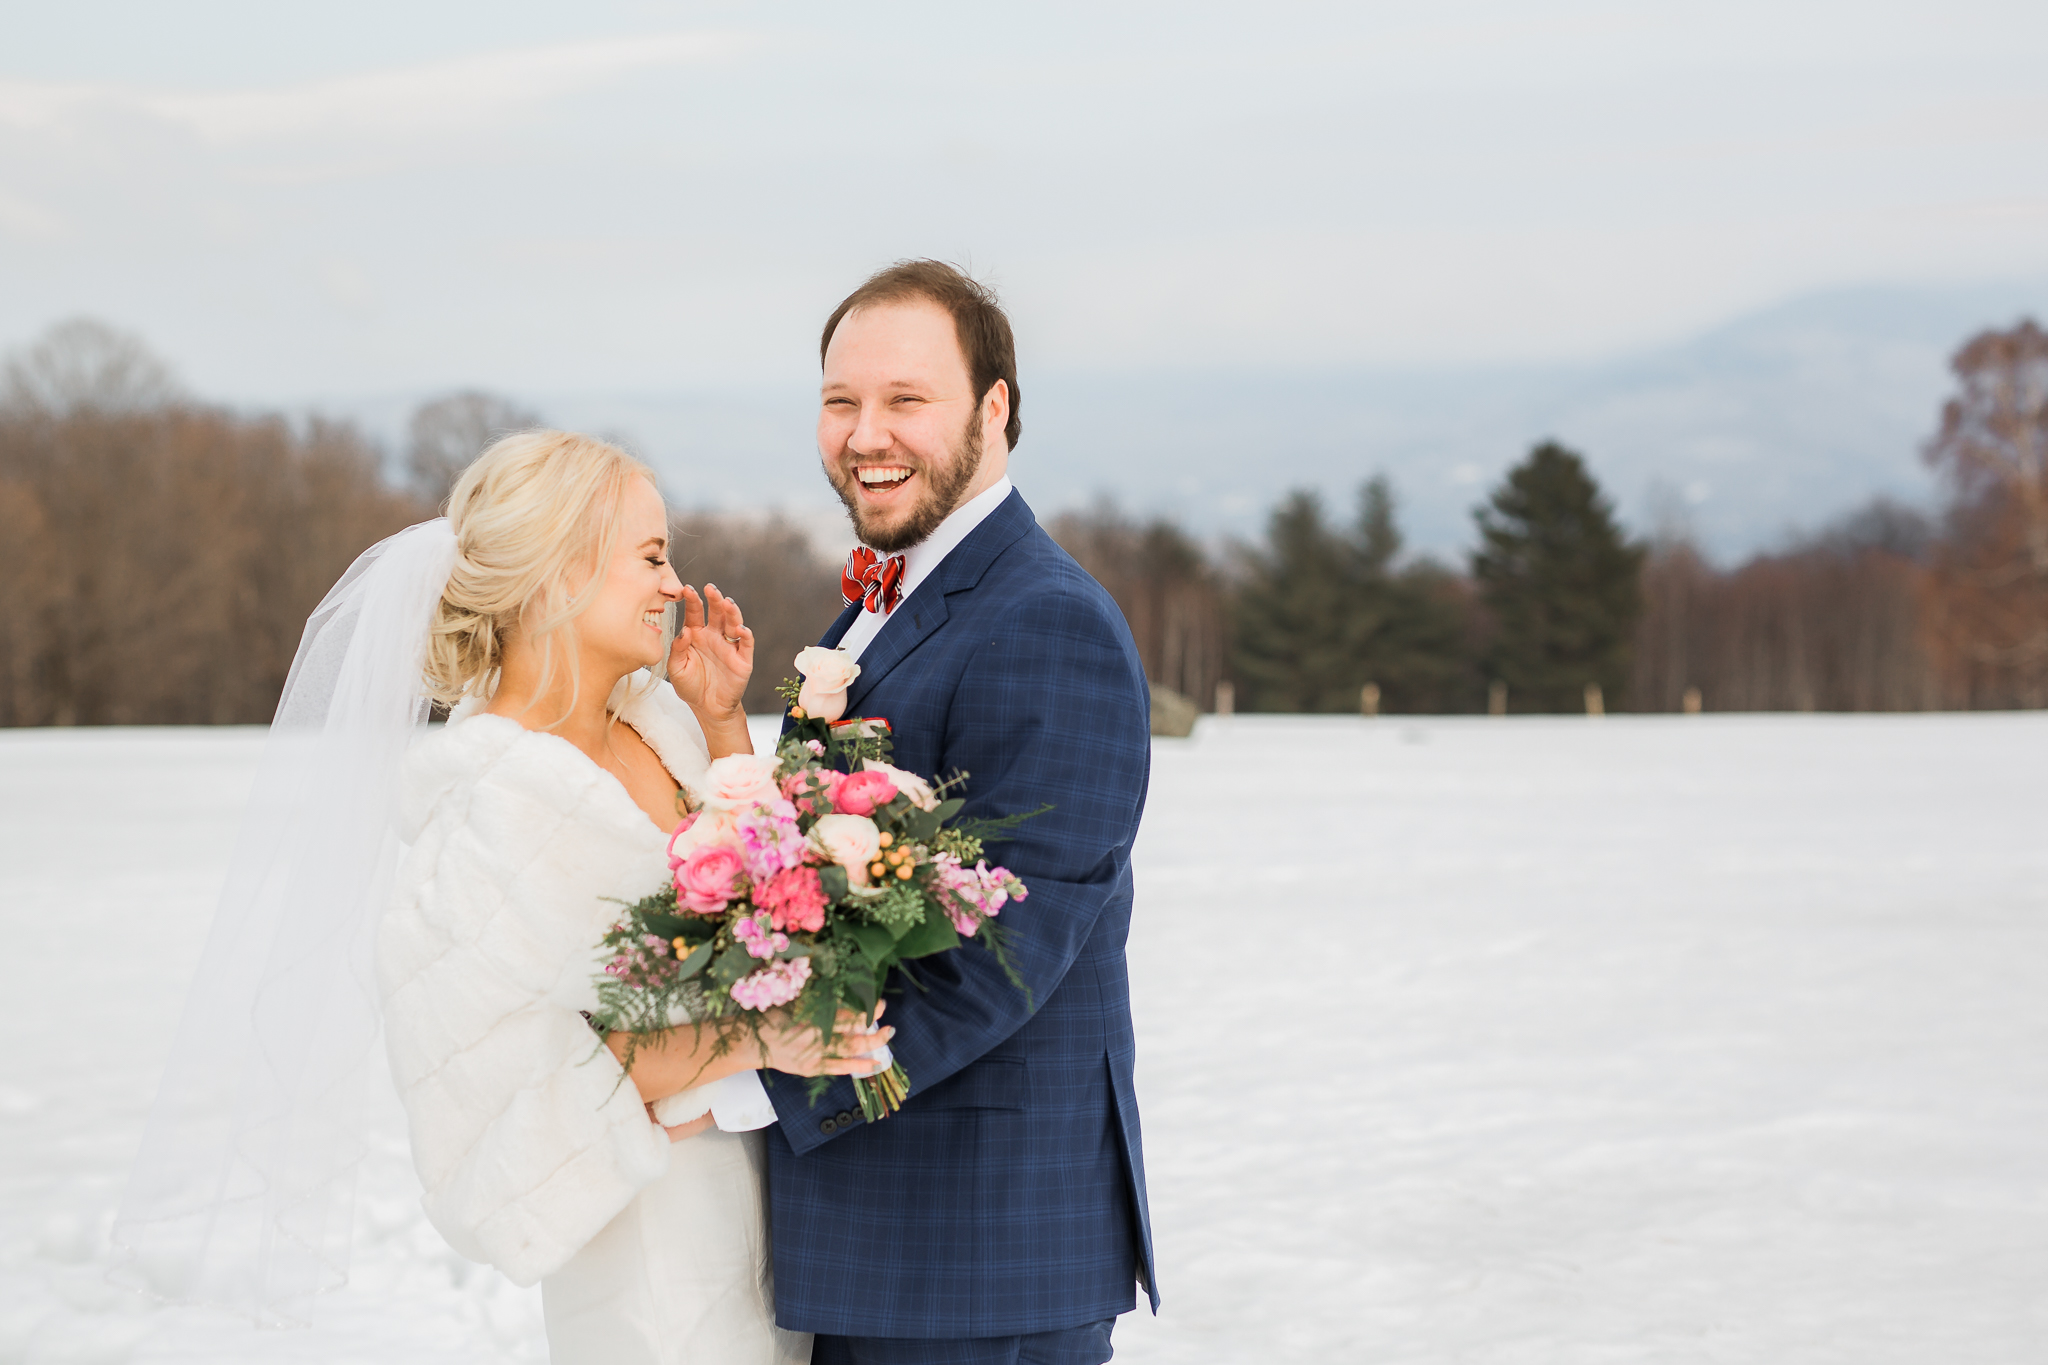 Trapp Family Lodge Winter Wedding Vermont